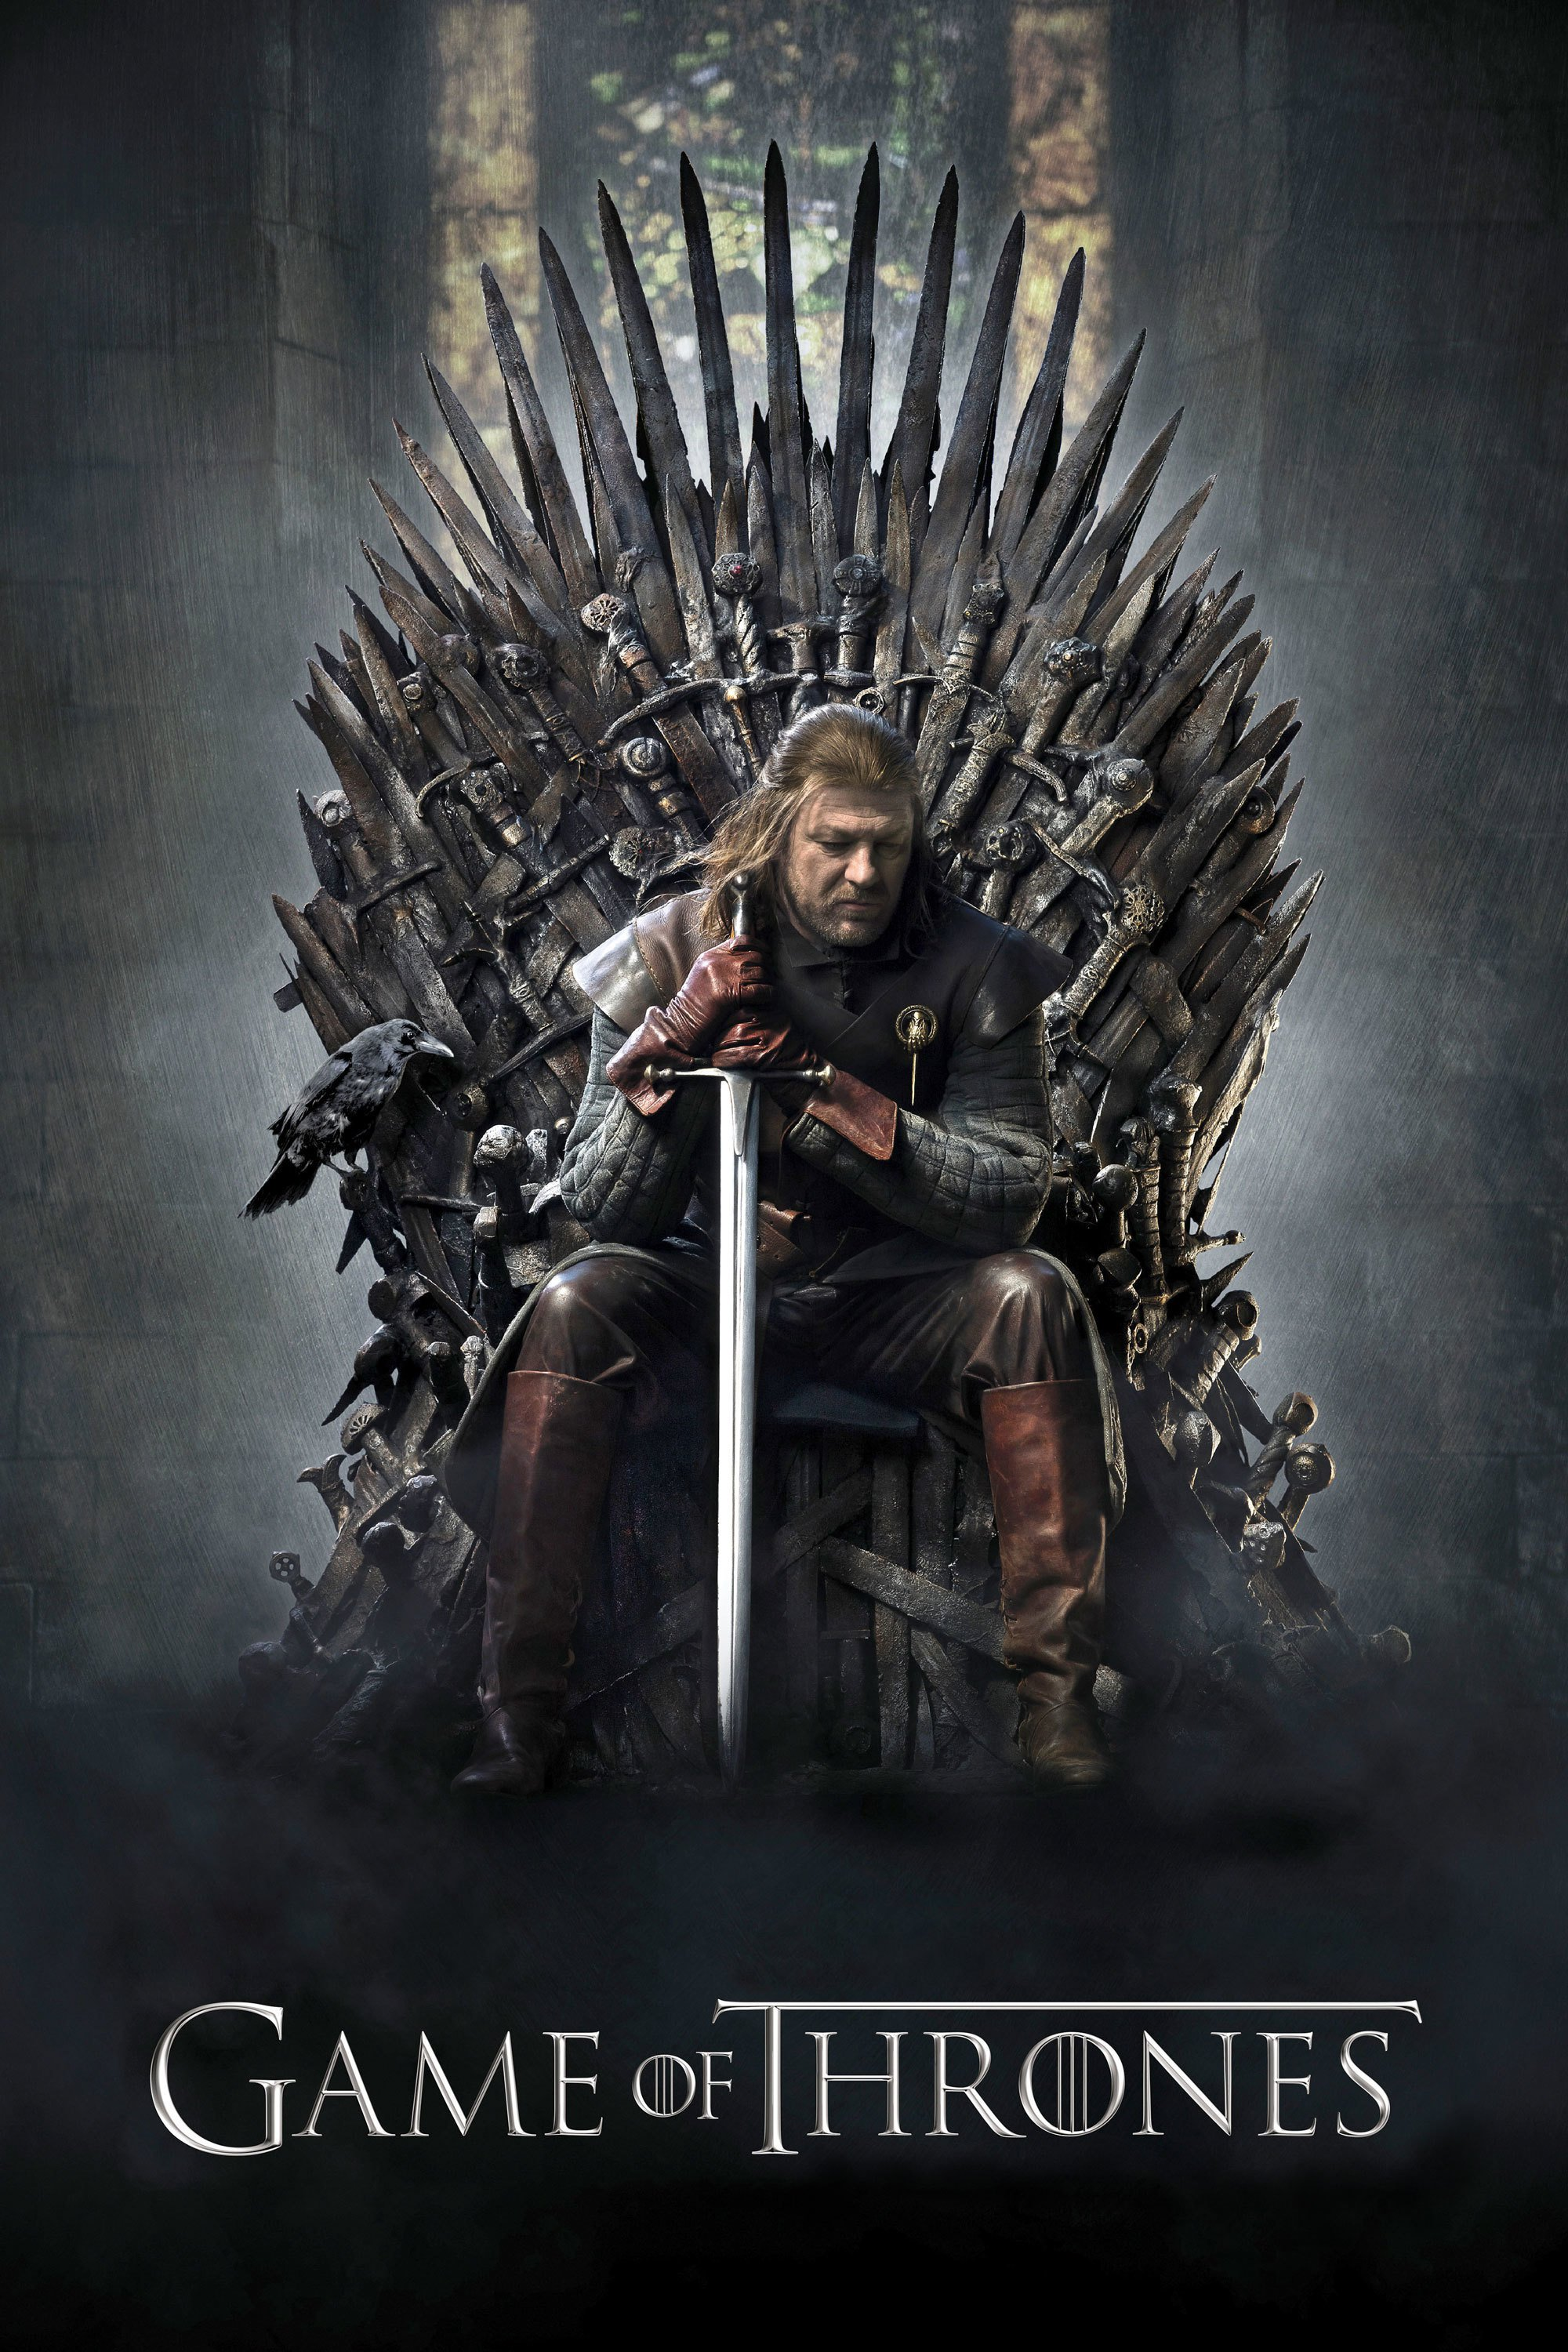 game of throne poster high quality HD printable wallpapers season 1 throne